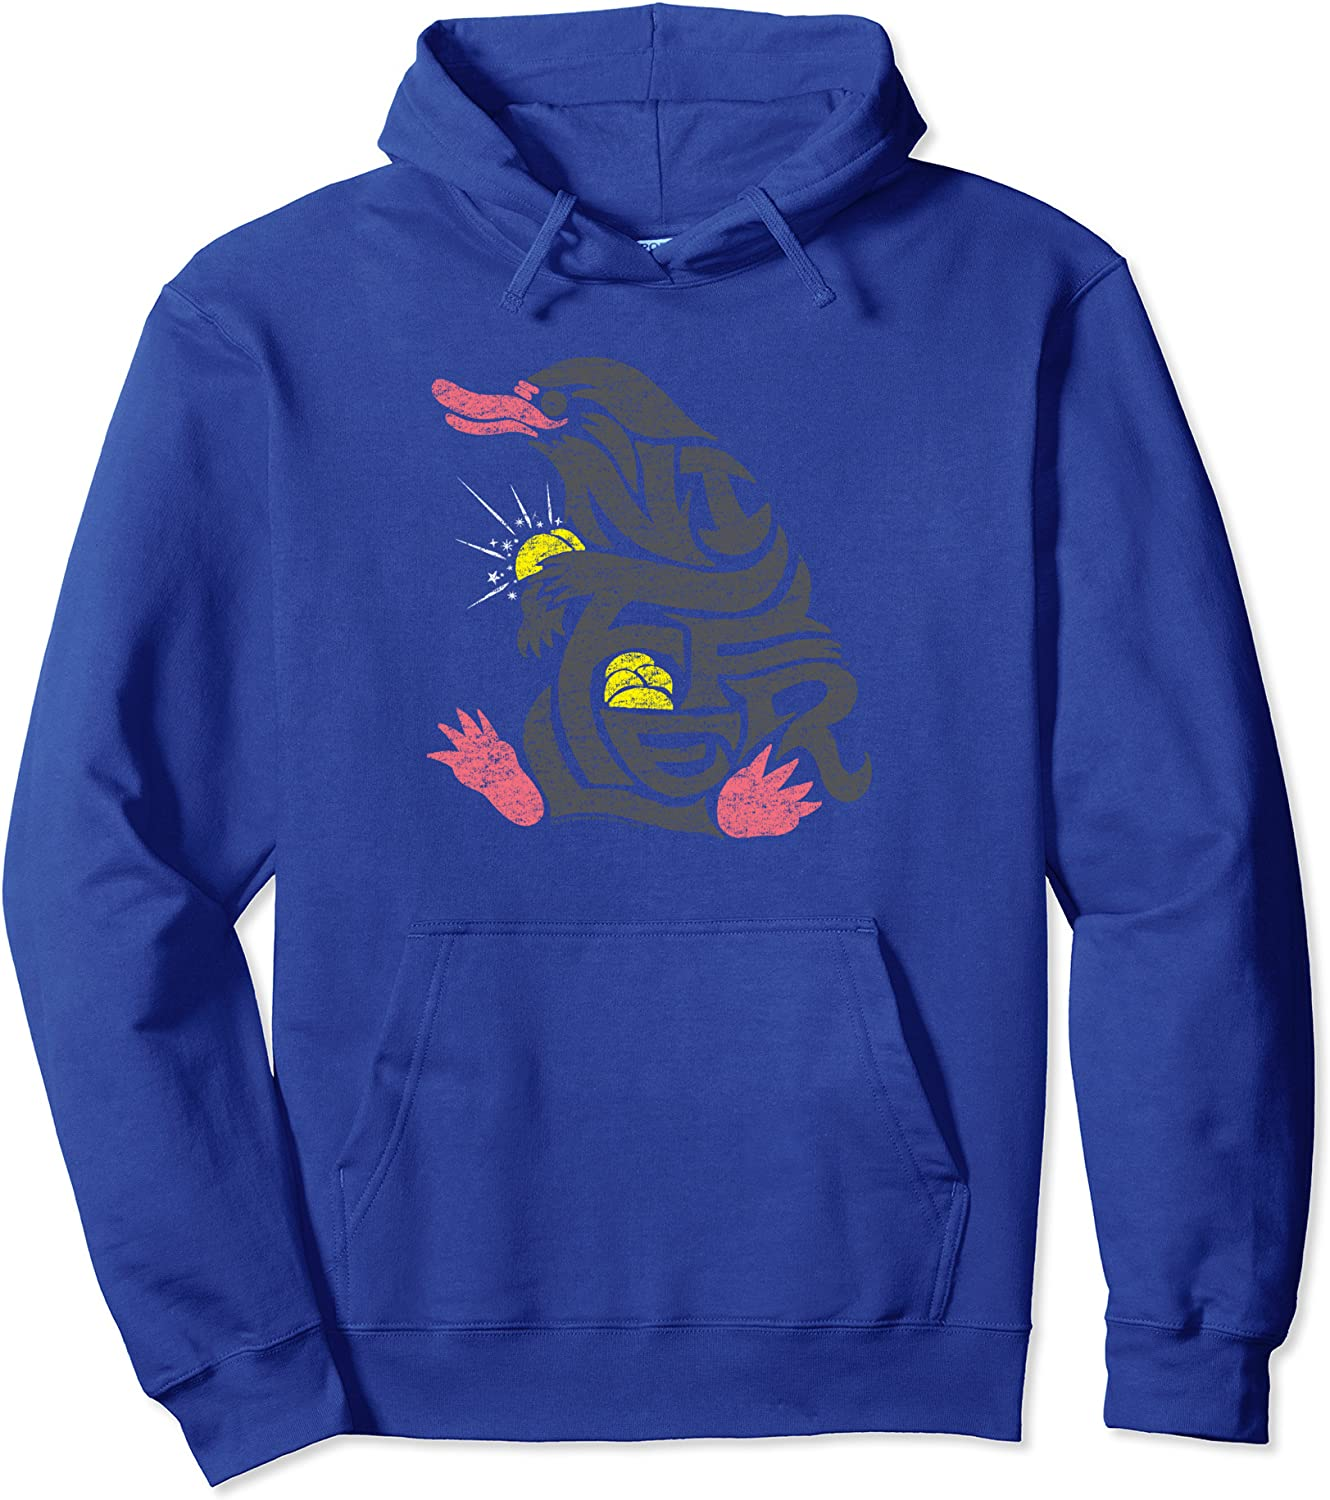 Fantastic Beasts and Where to Niffler Pullover 世界の人気ブランド Find Them 売り出し Hoodie